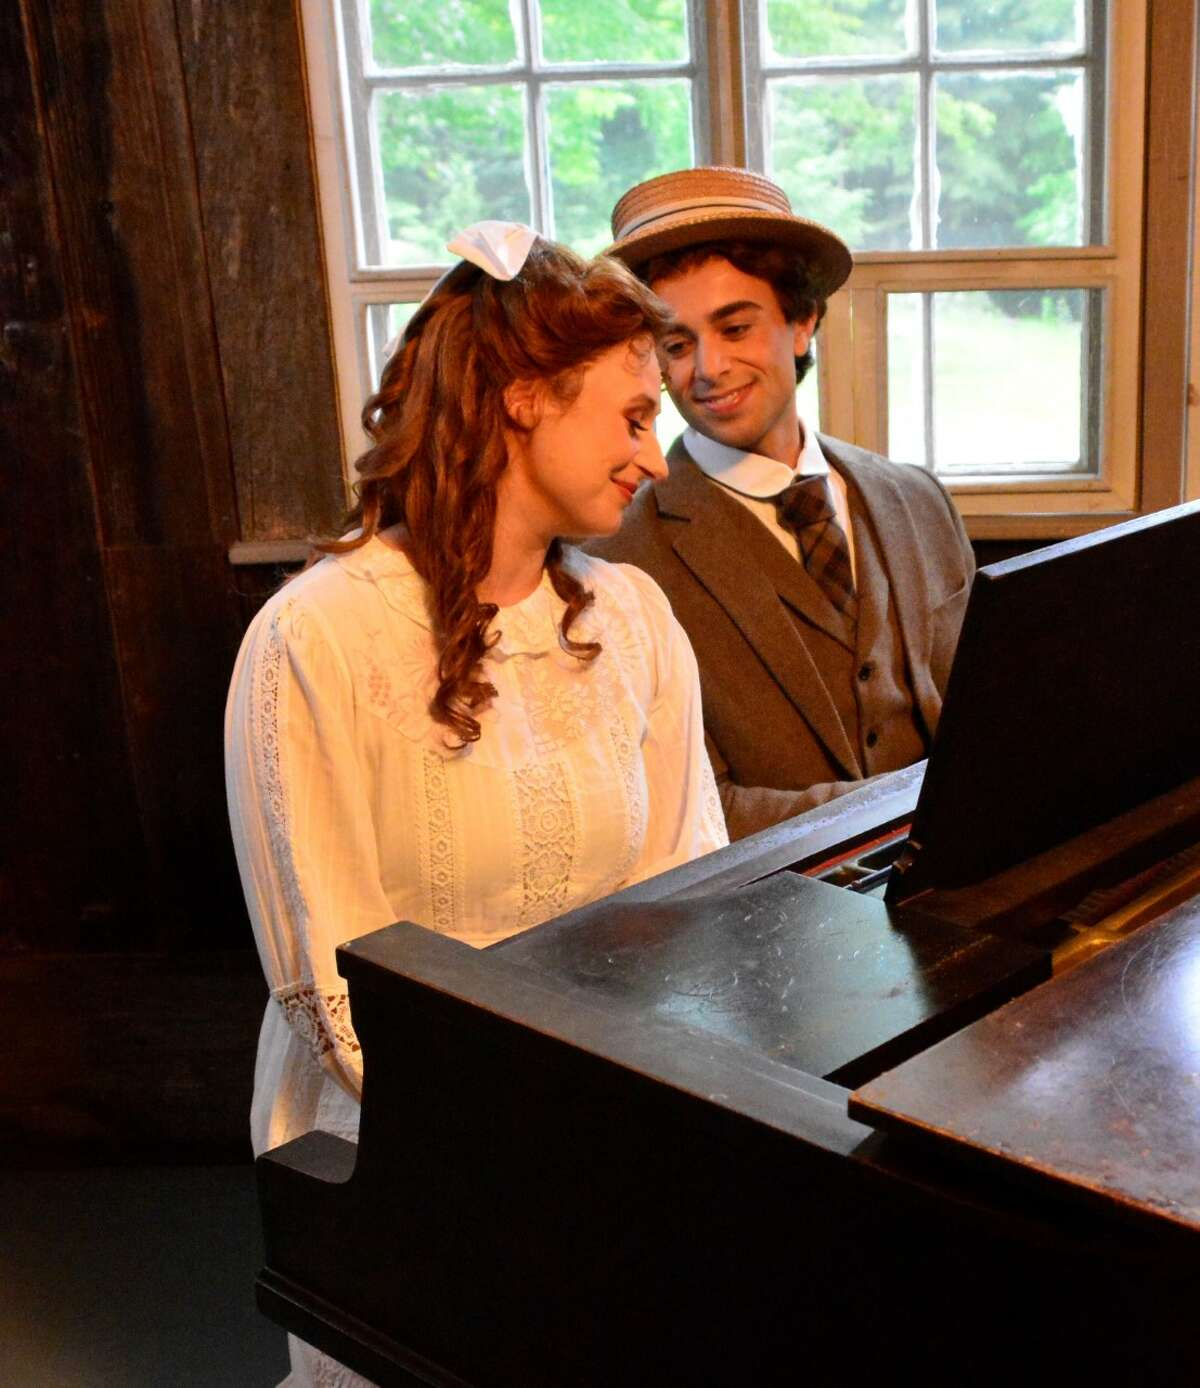 L-R: Victoria Erickson, soprano as Harmony Twichell; Joel Clemens, baritone at Charles Ives Photos by Sarah Lockwood, courtesy of Seagle Festival